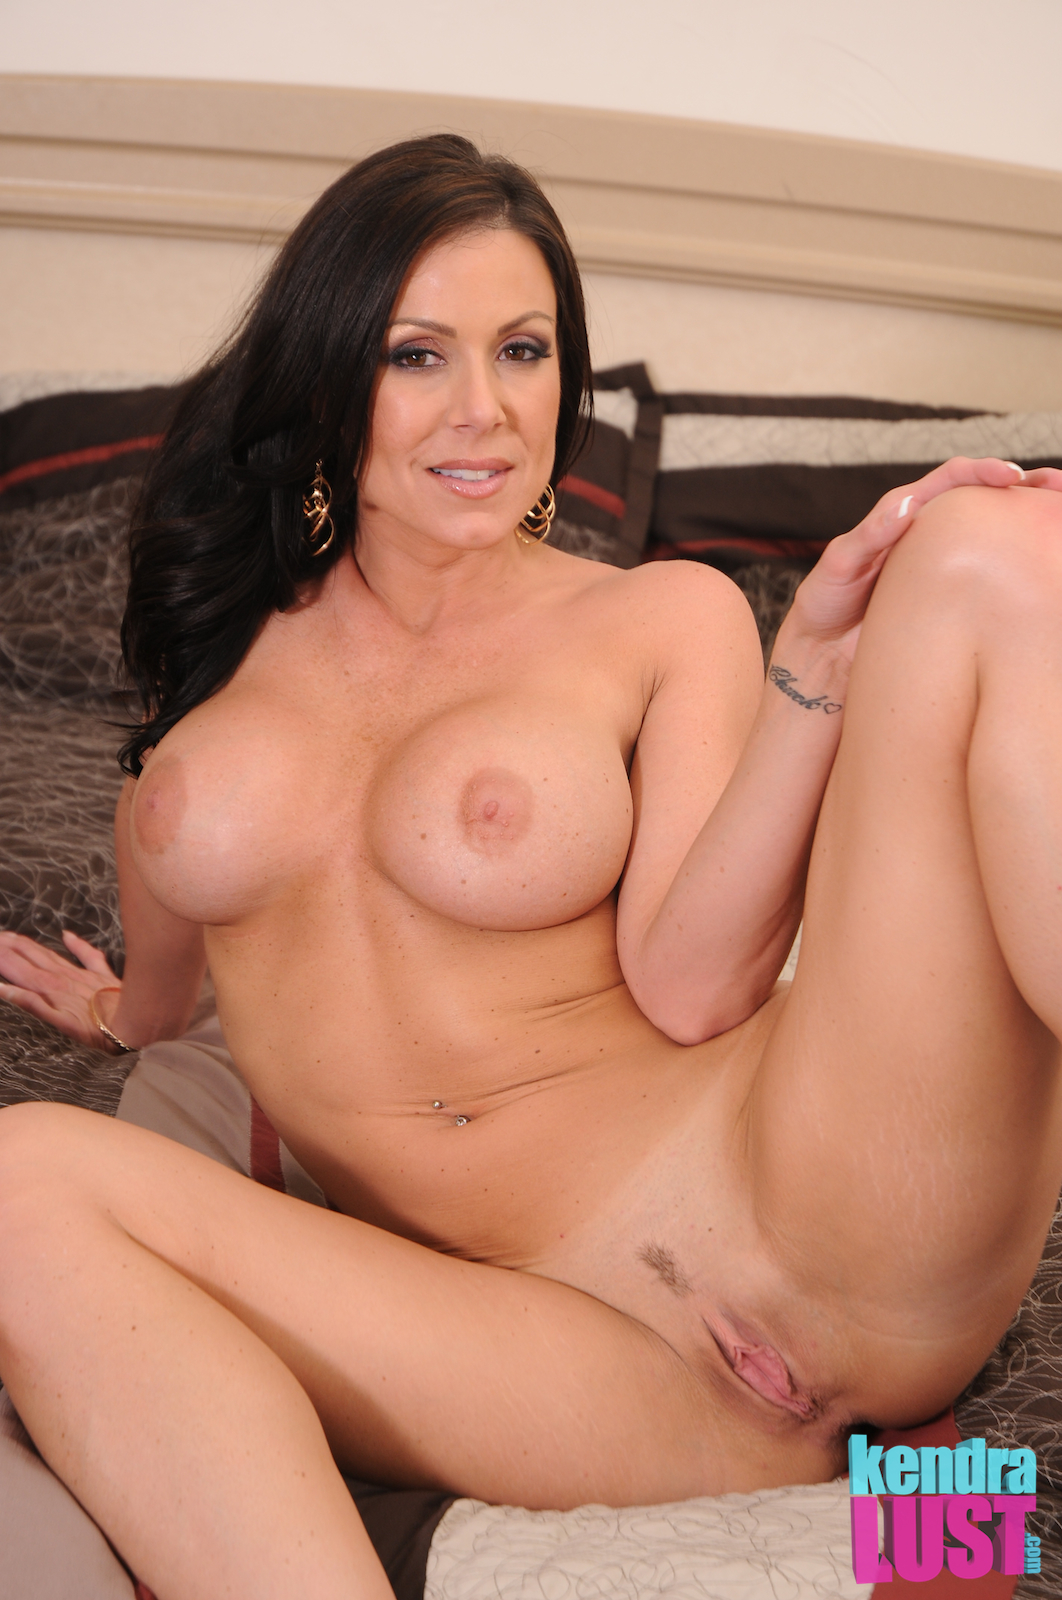 Kendra lust lust for three 2 of 3